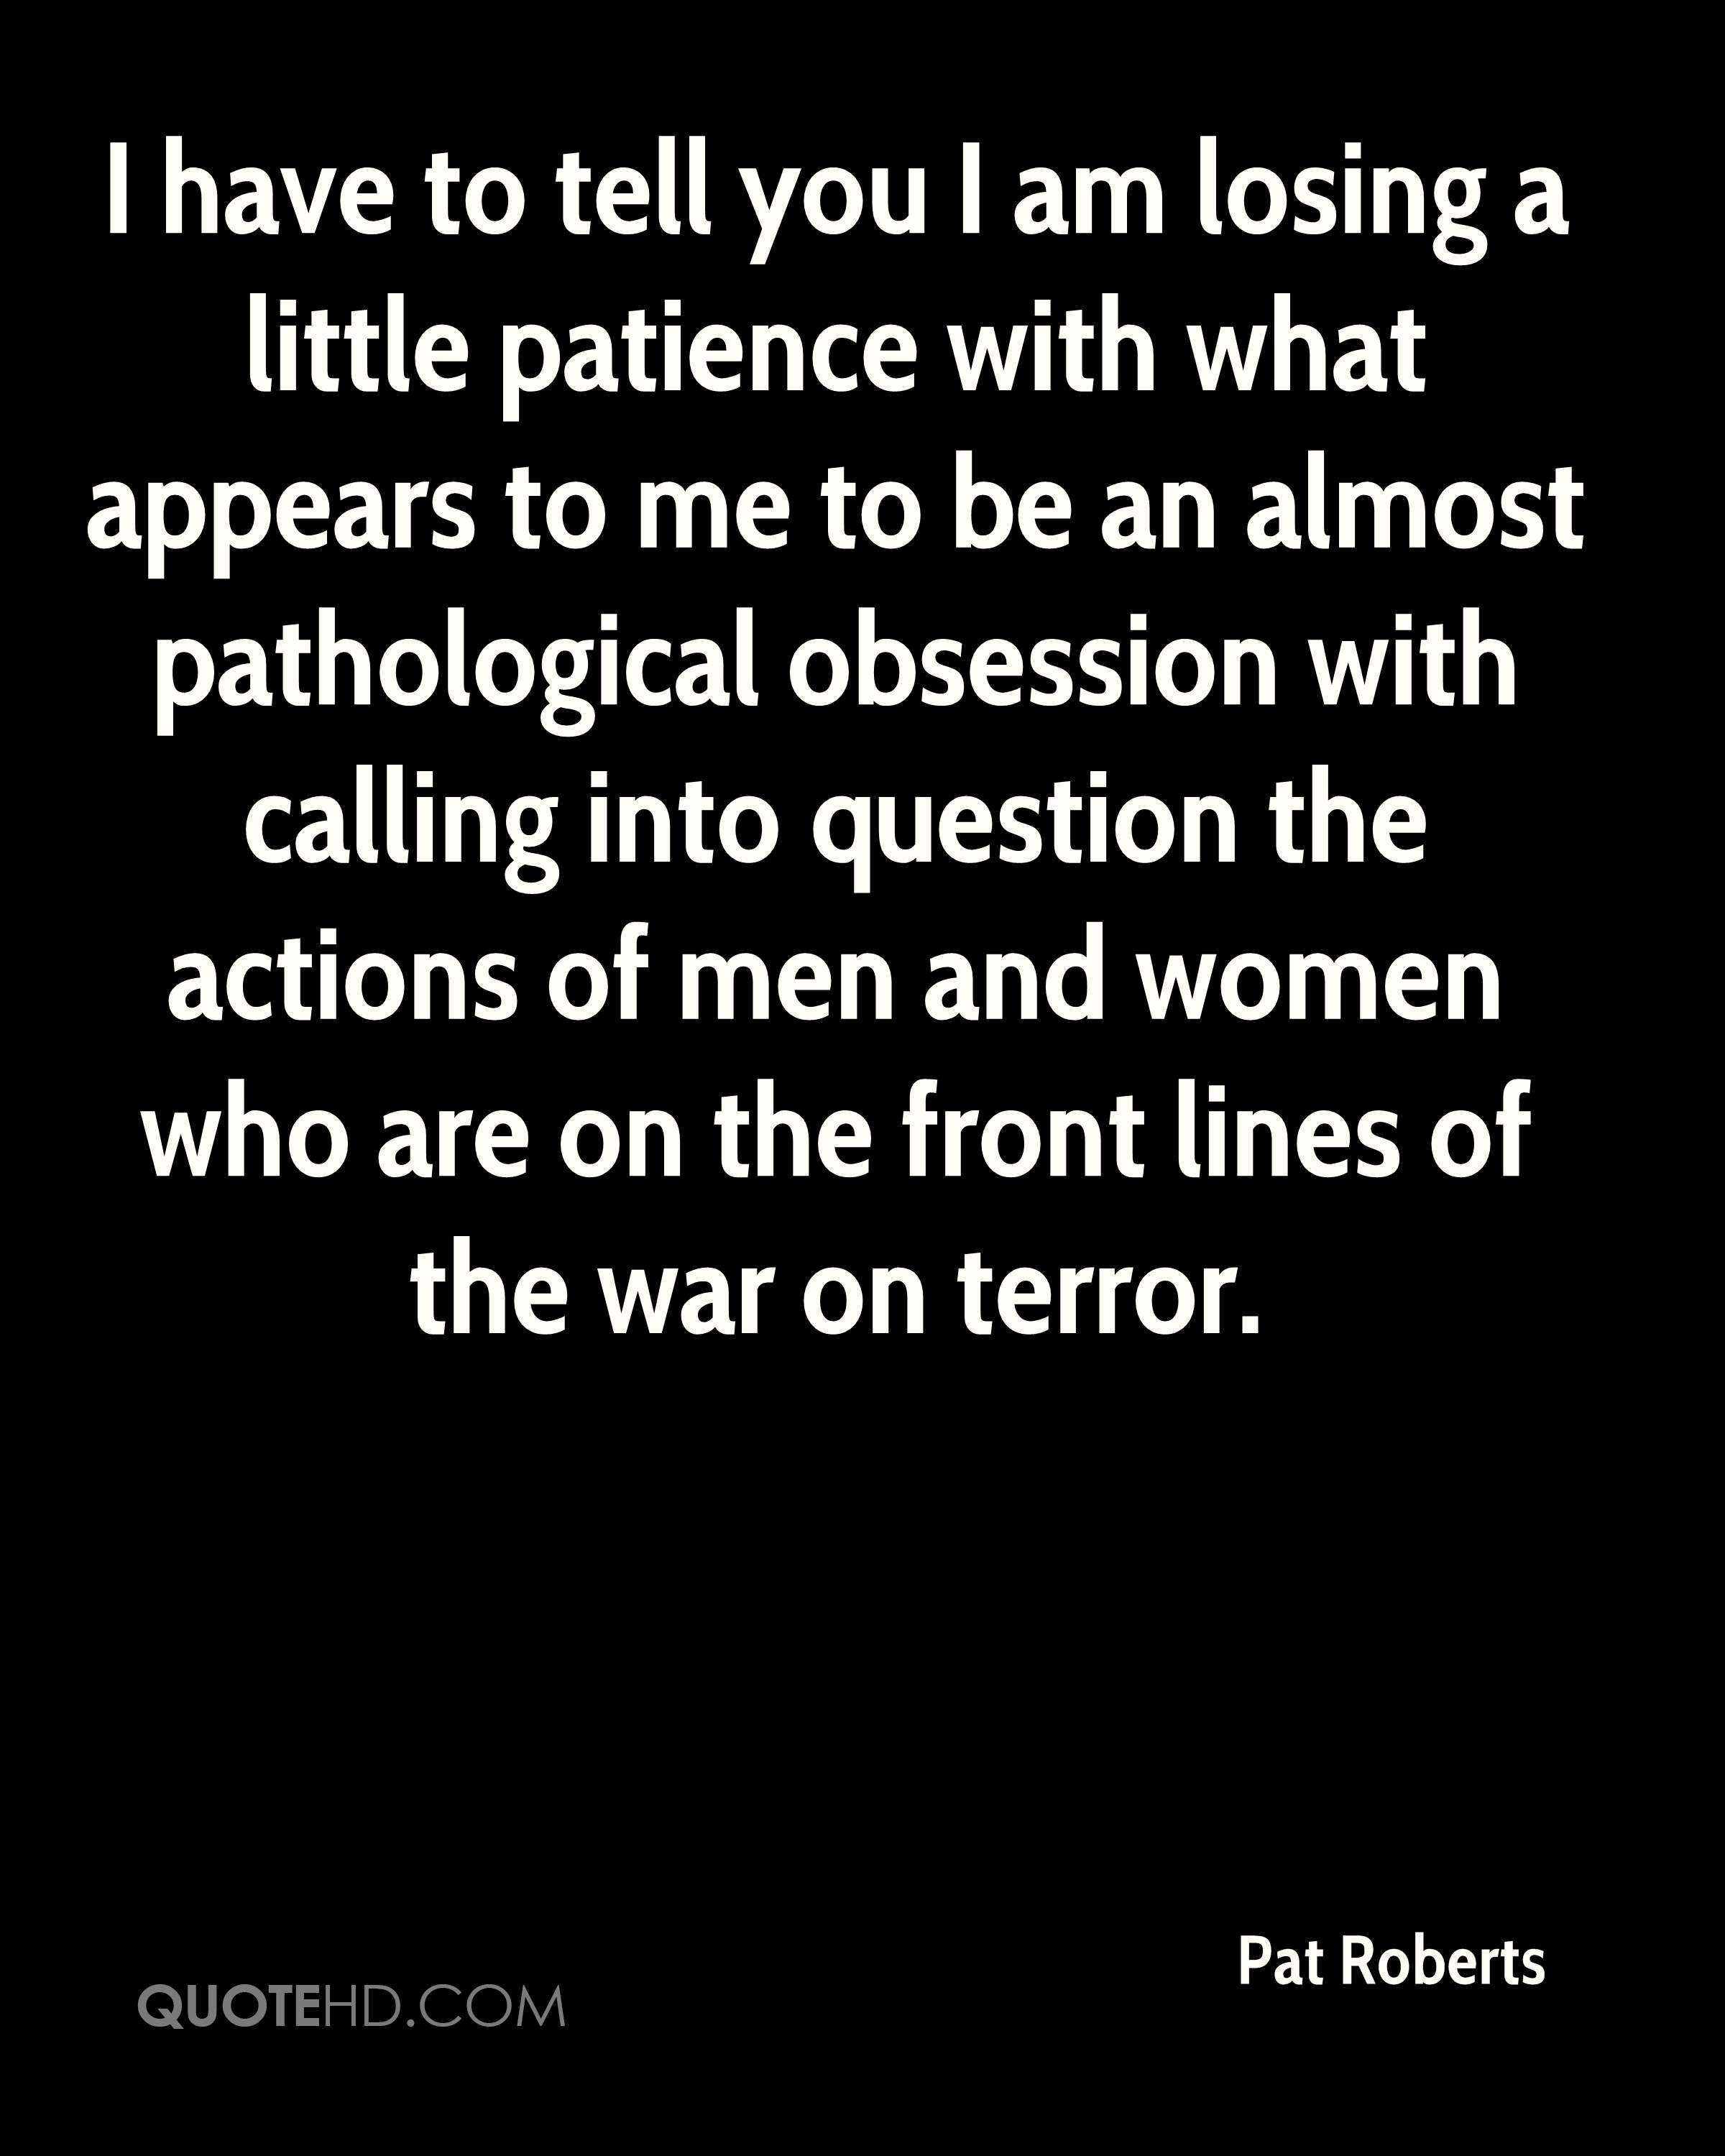 I have to tell you I am losing a little patience with what appears to me to be an almost pathological obsession with calling into question the actions of men and women who are on the front lines of the war on terror.